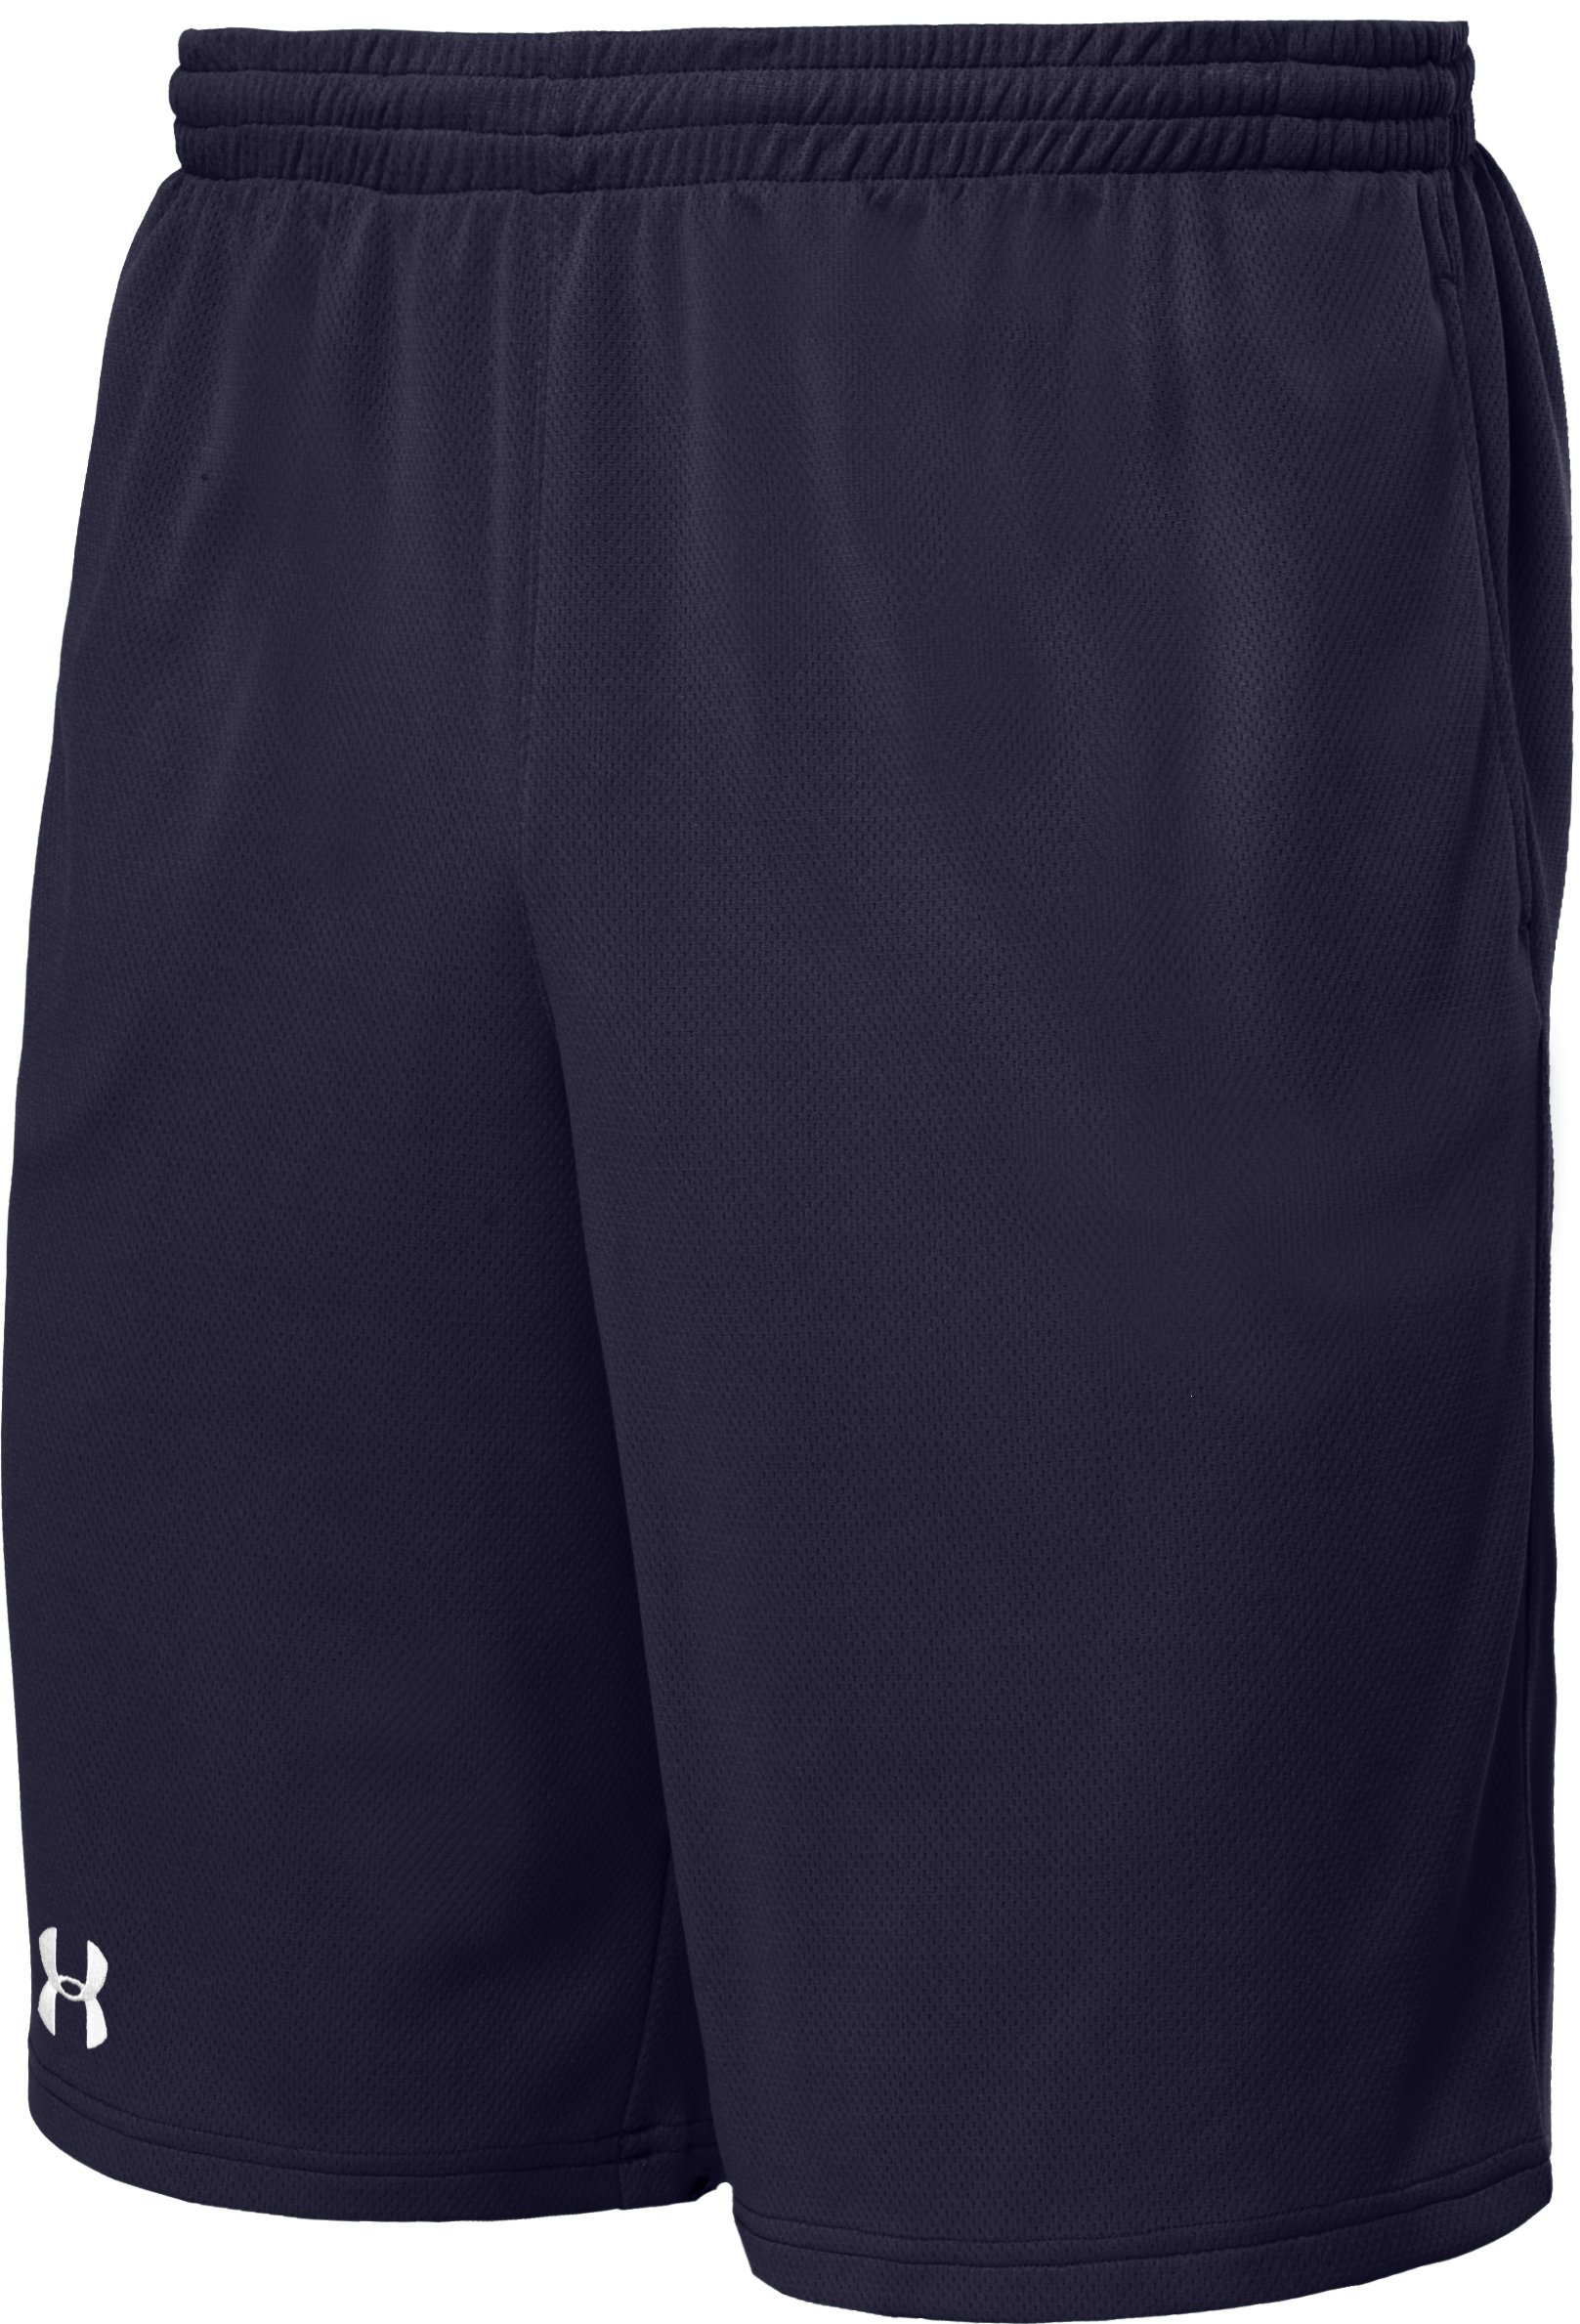 "Men's UA Flex 10"" Shorts, Midnight Navy"